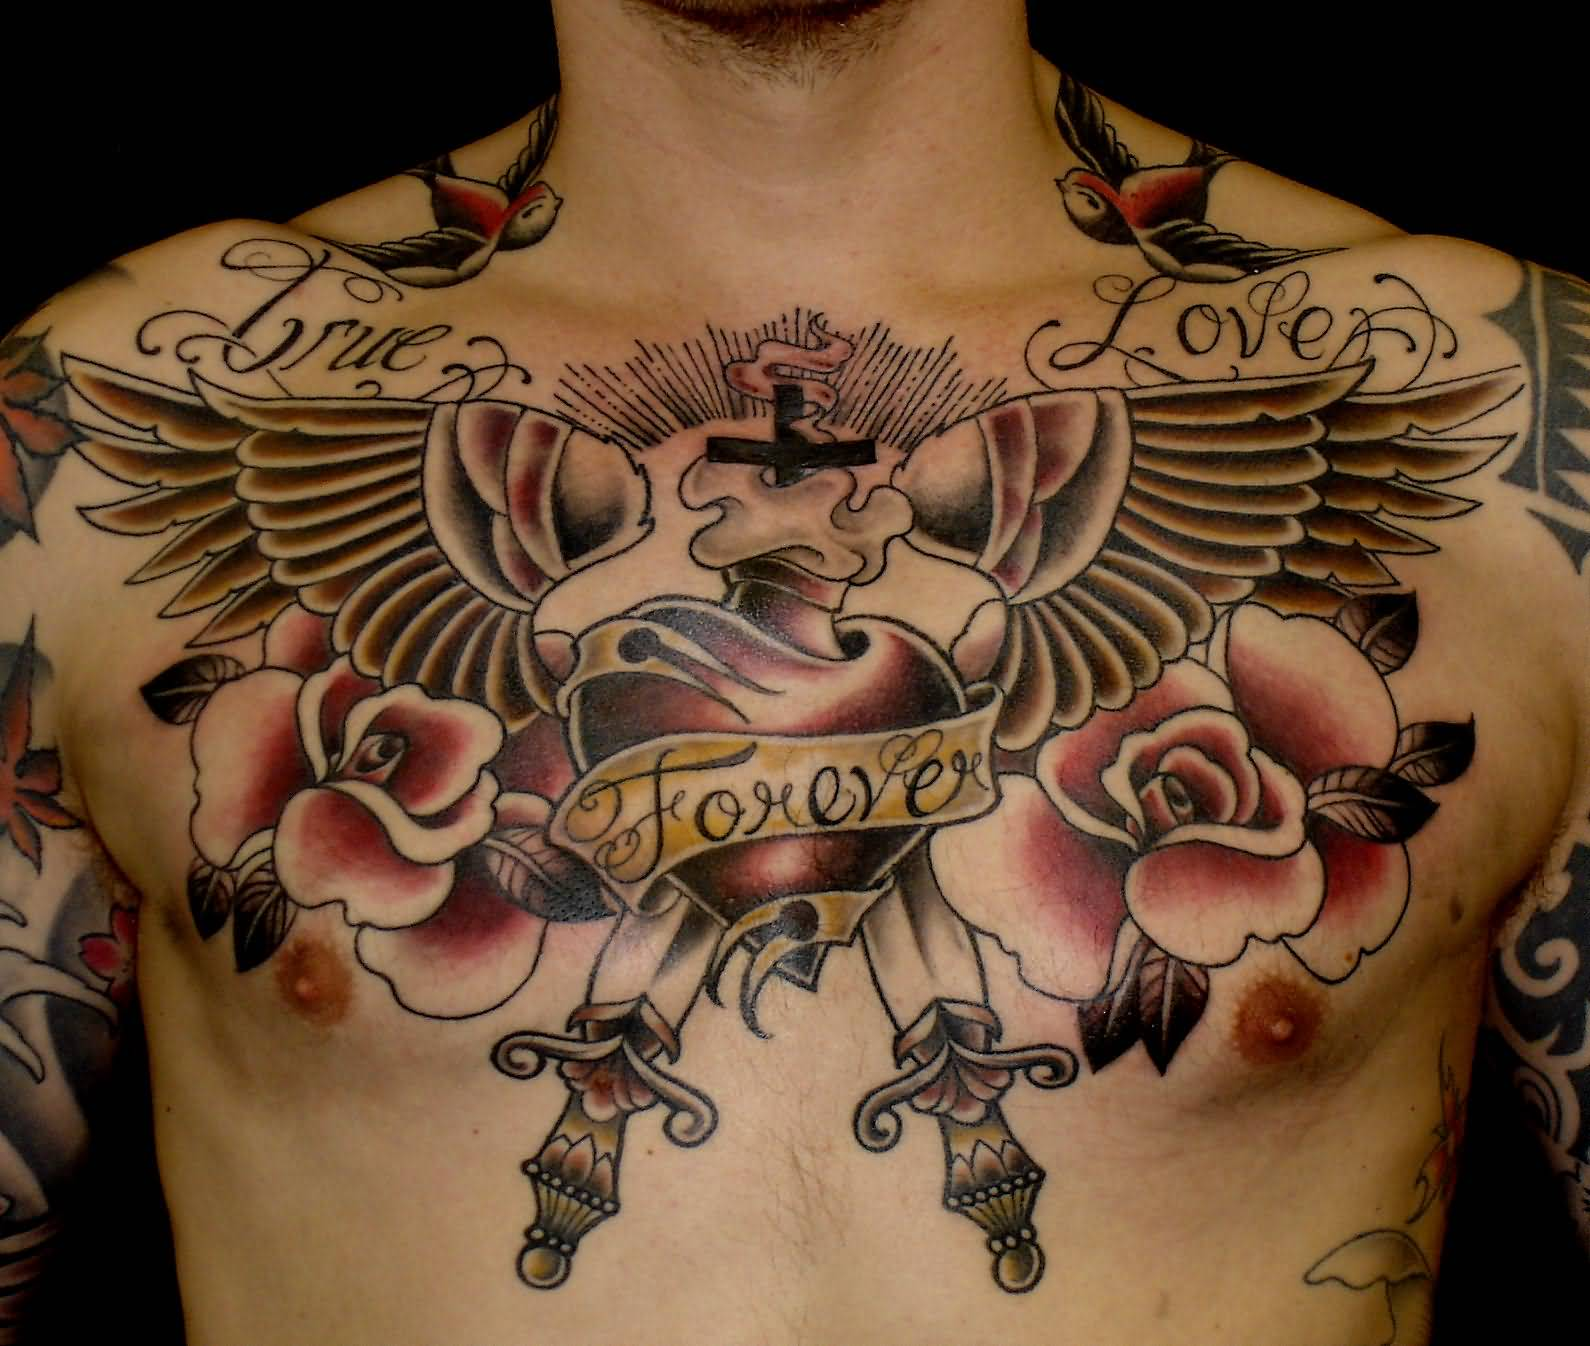 Awesome Memorial Old School Tattoo On Chest